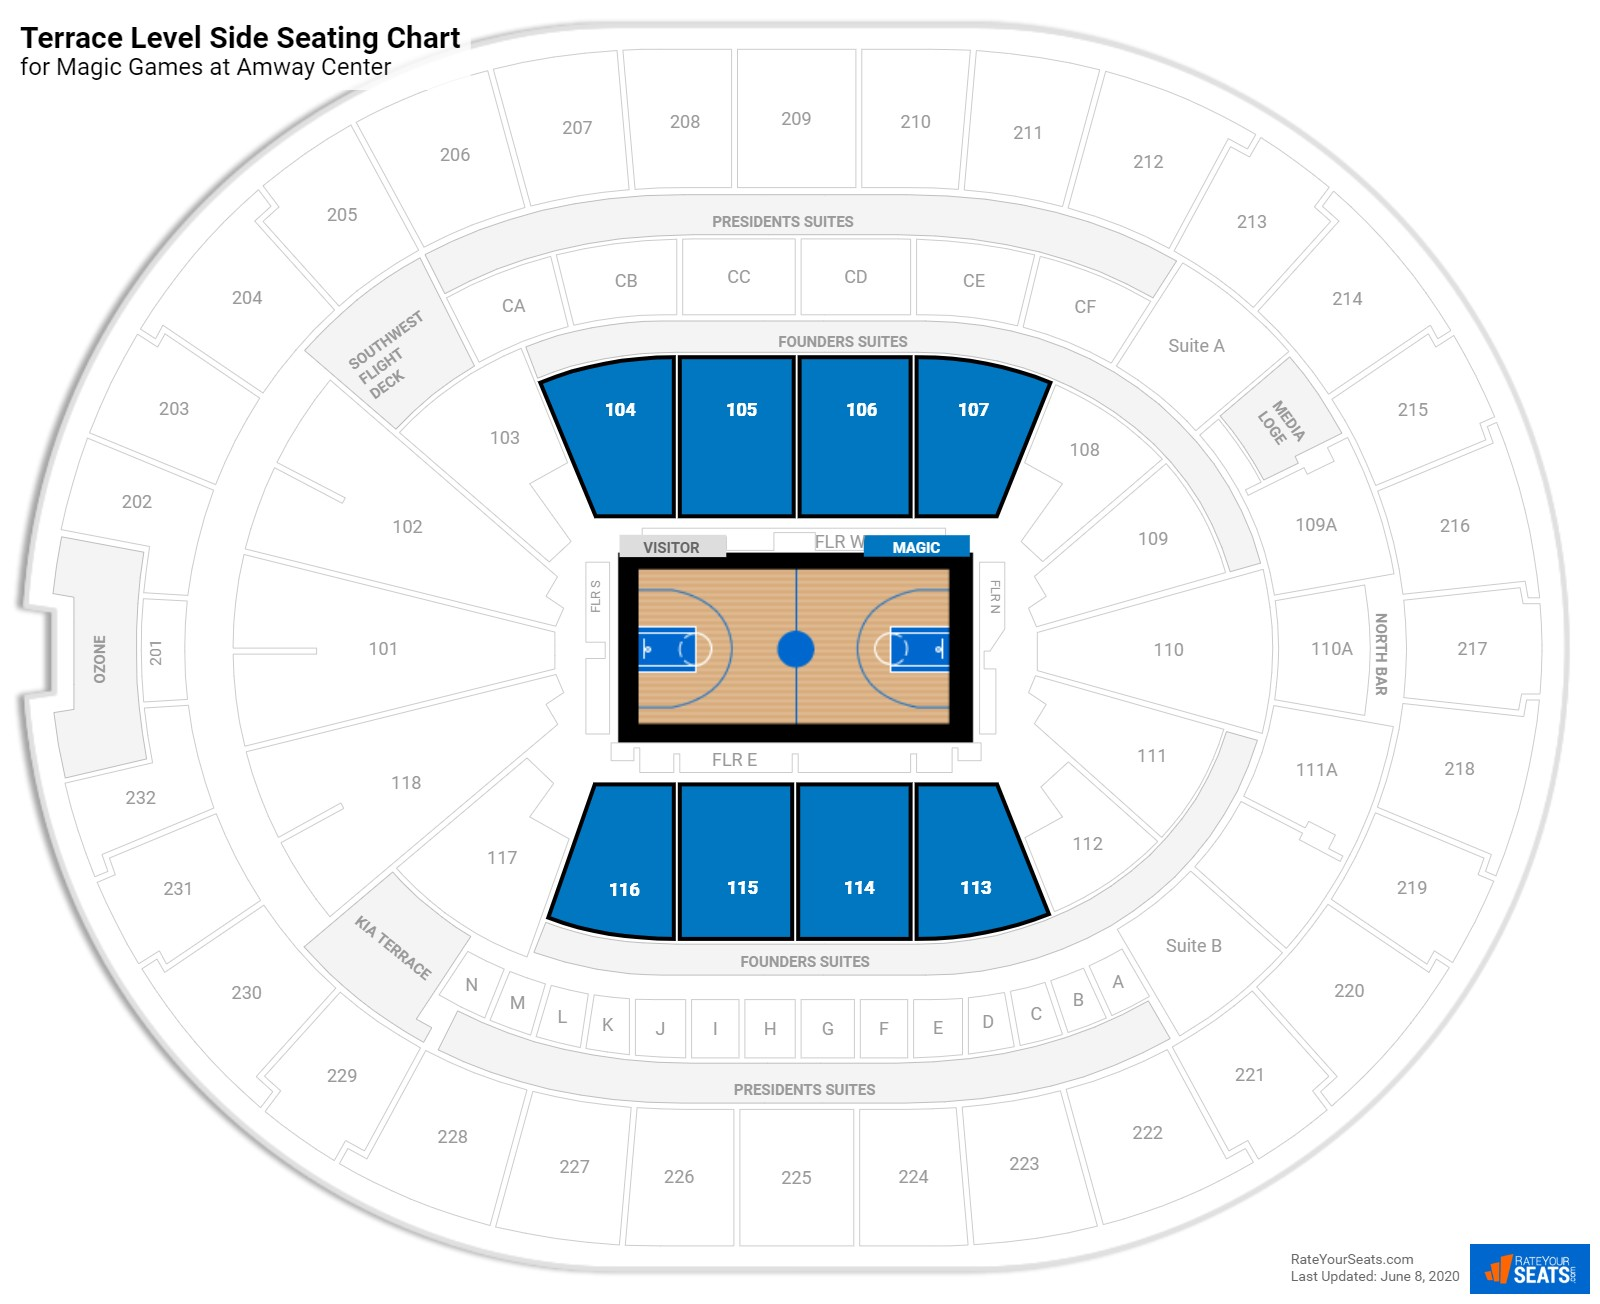 Amway Center Terrace Level Center seating chart